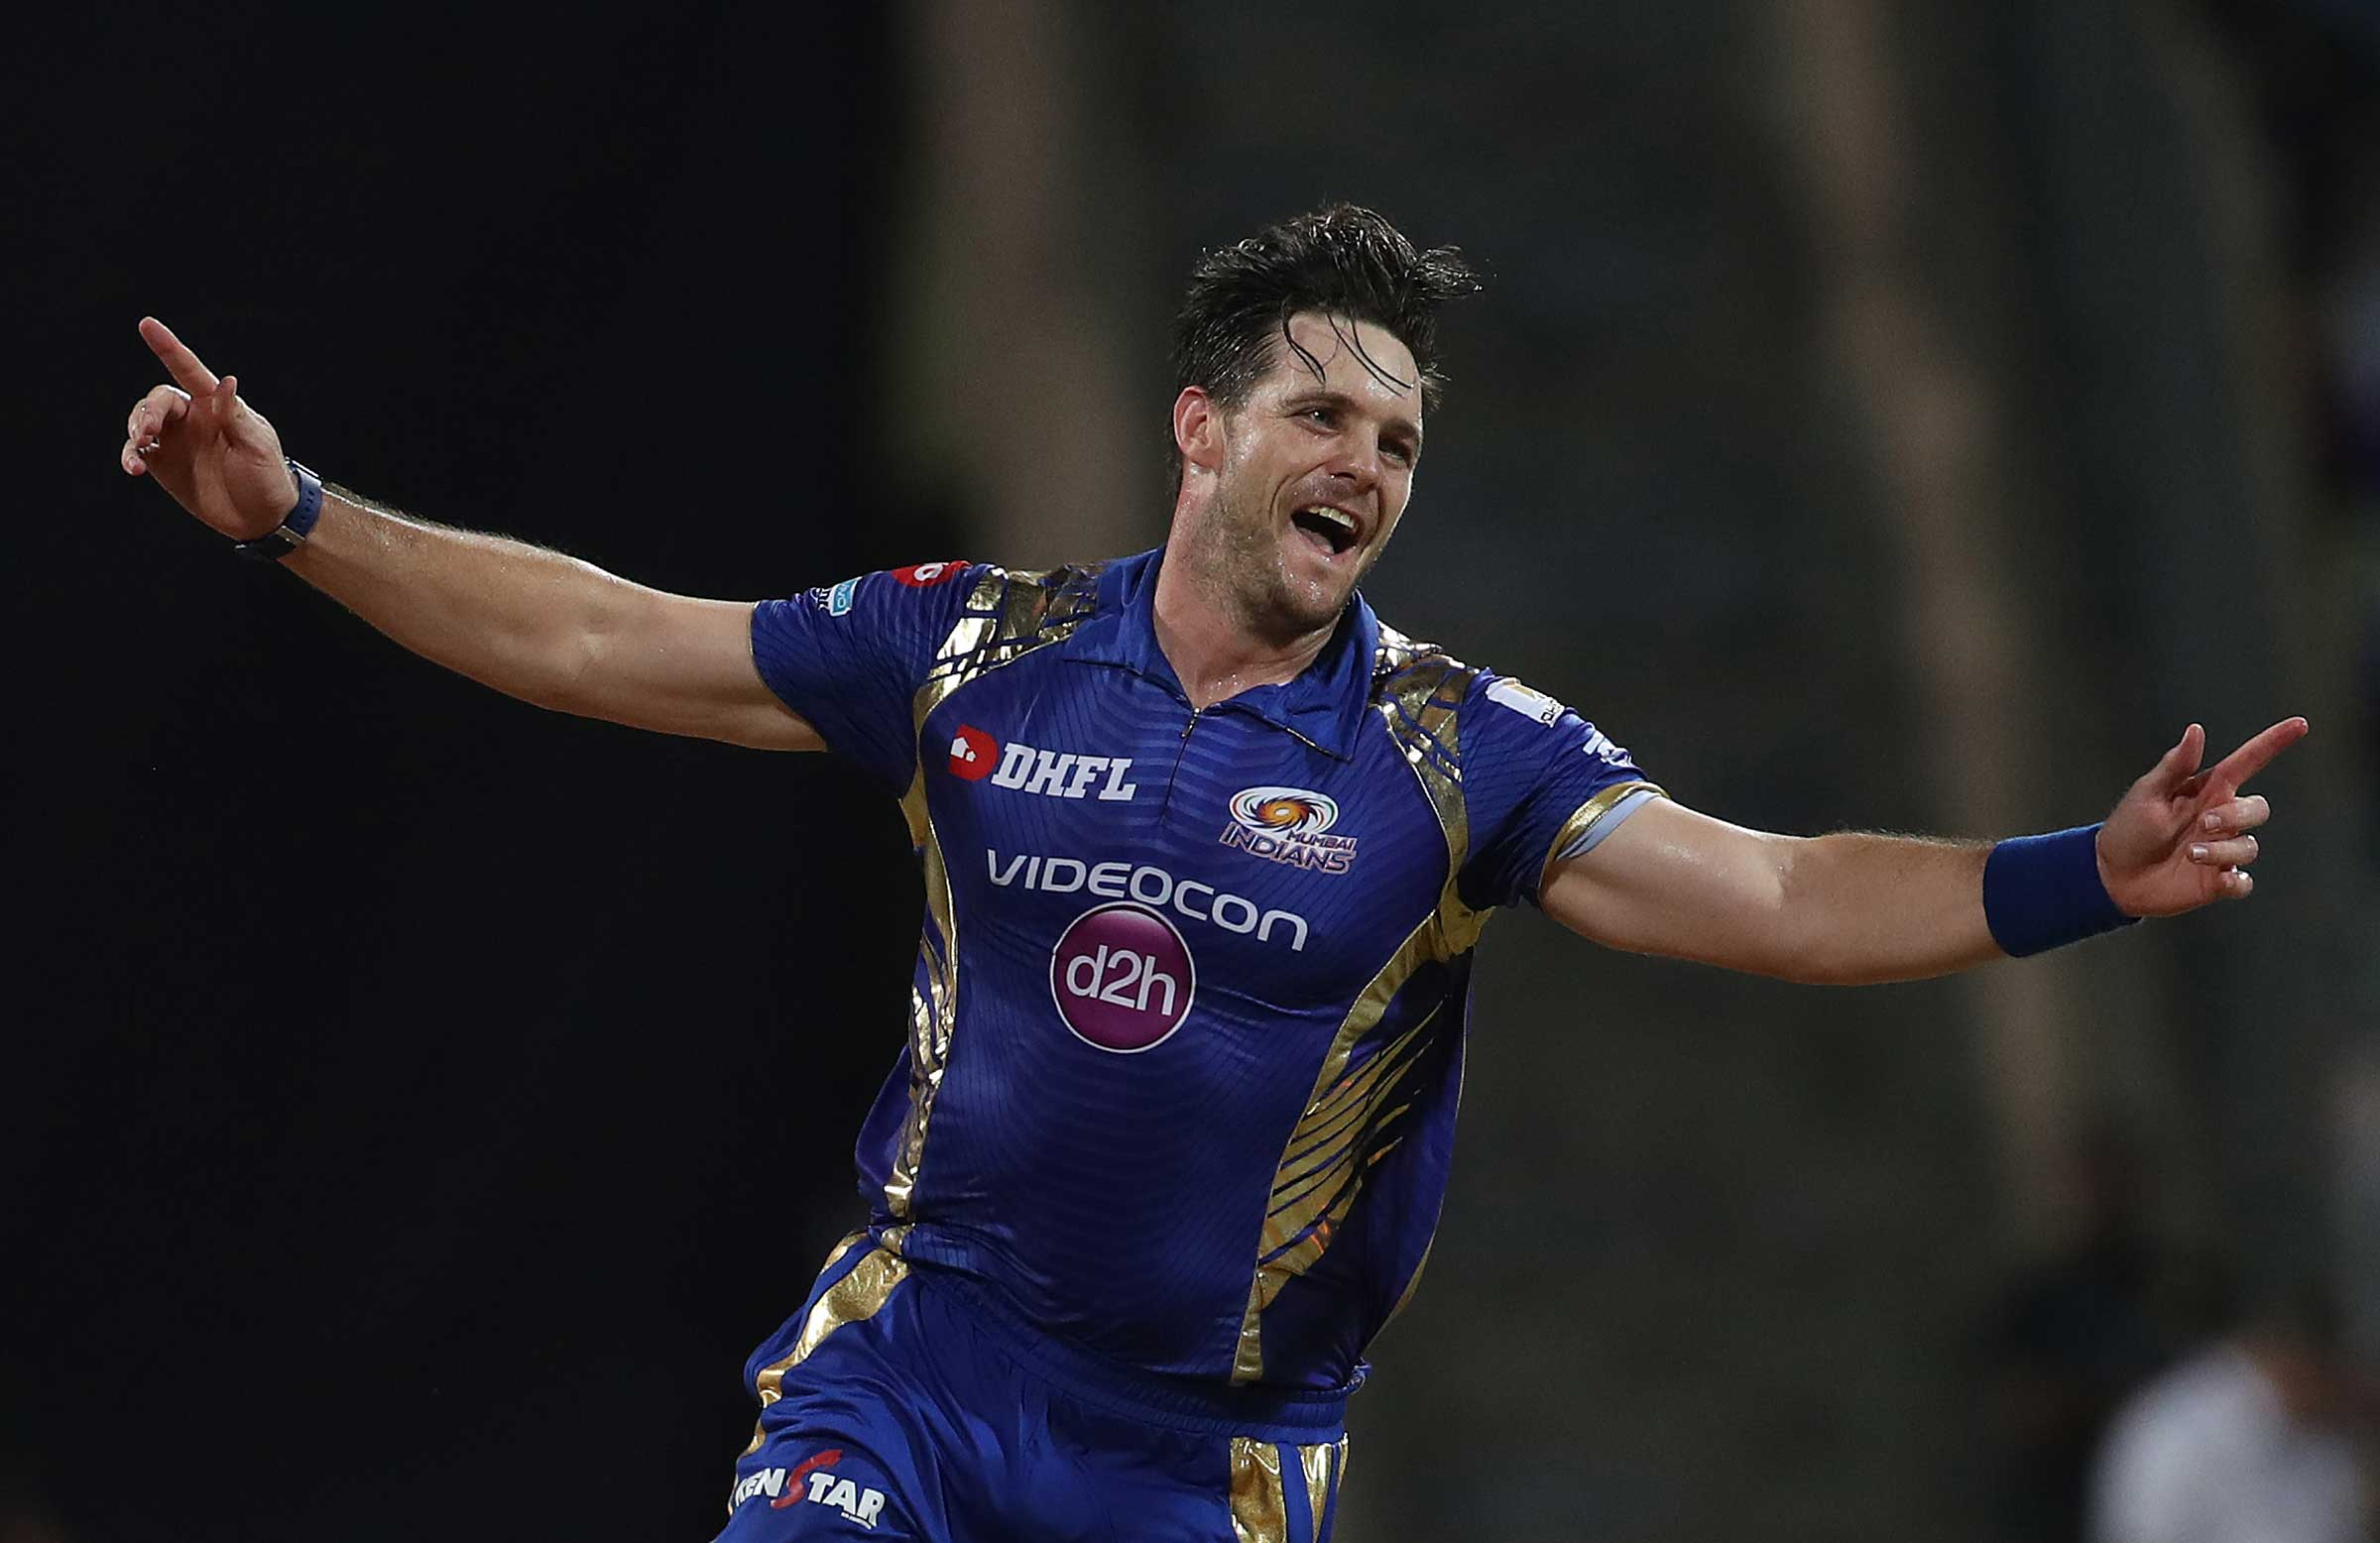 McClenaghan has 54 wickets at 24.61 in three seasons of IPL // BCCI